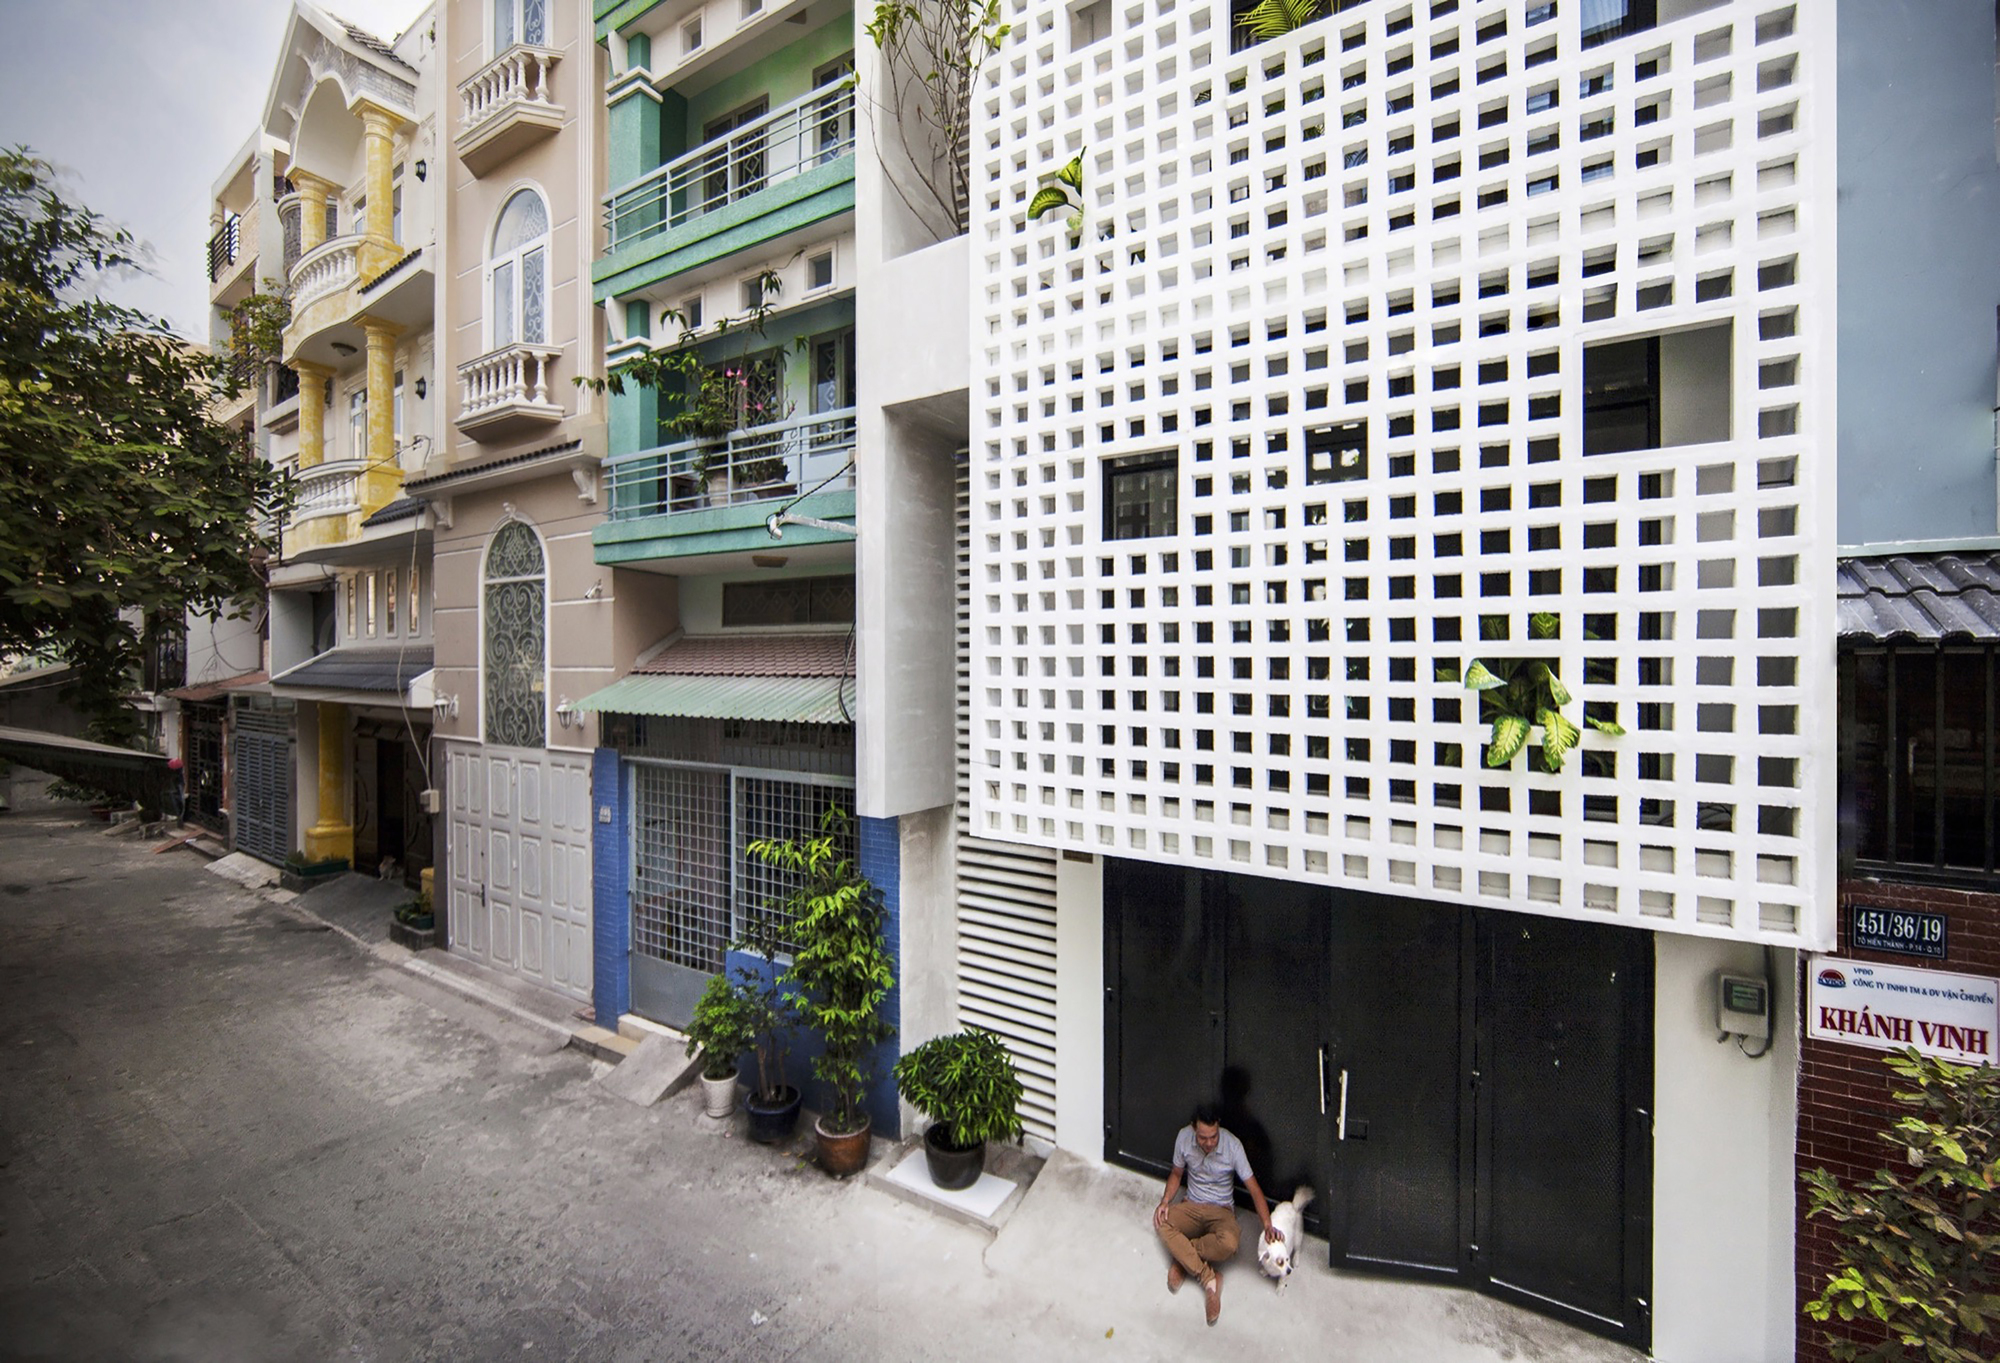 Q10 house studio8 vietnam archdaily for Casa in design